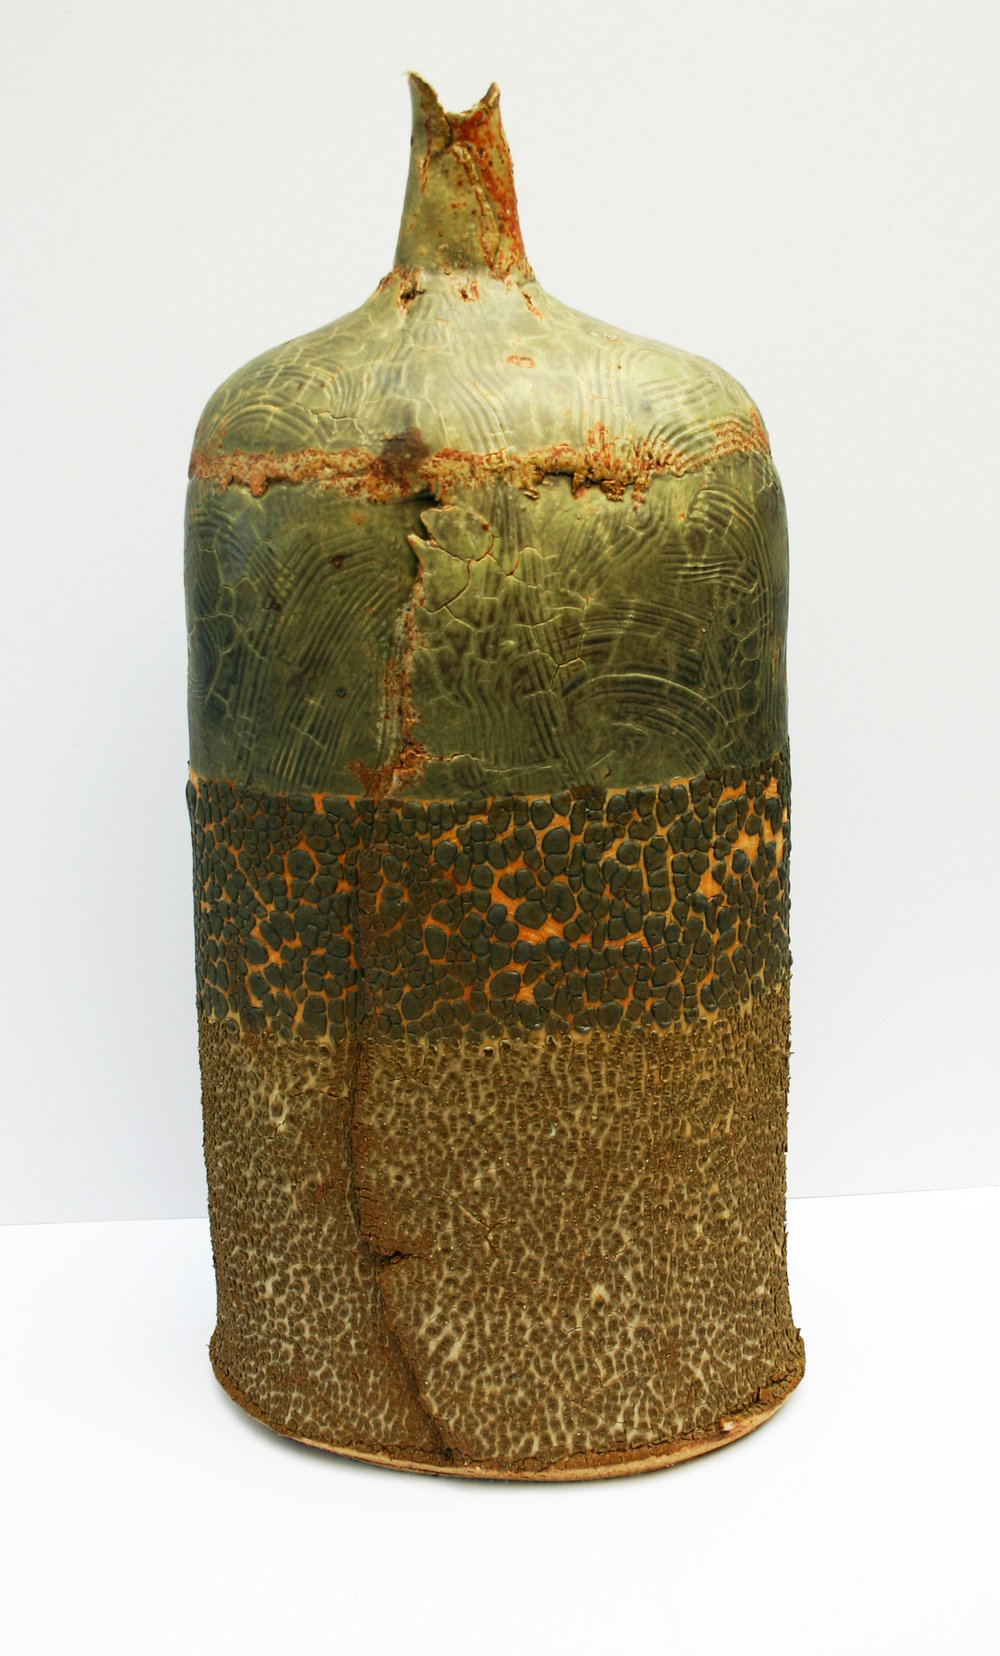 02 saltmarsh bottle with combed porcelain overlay 54x26cm.jpg